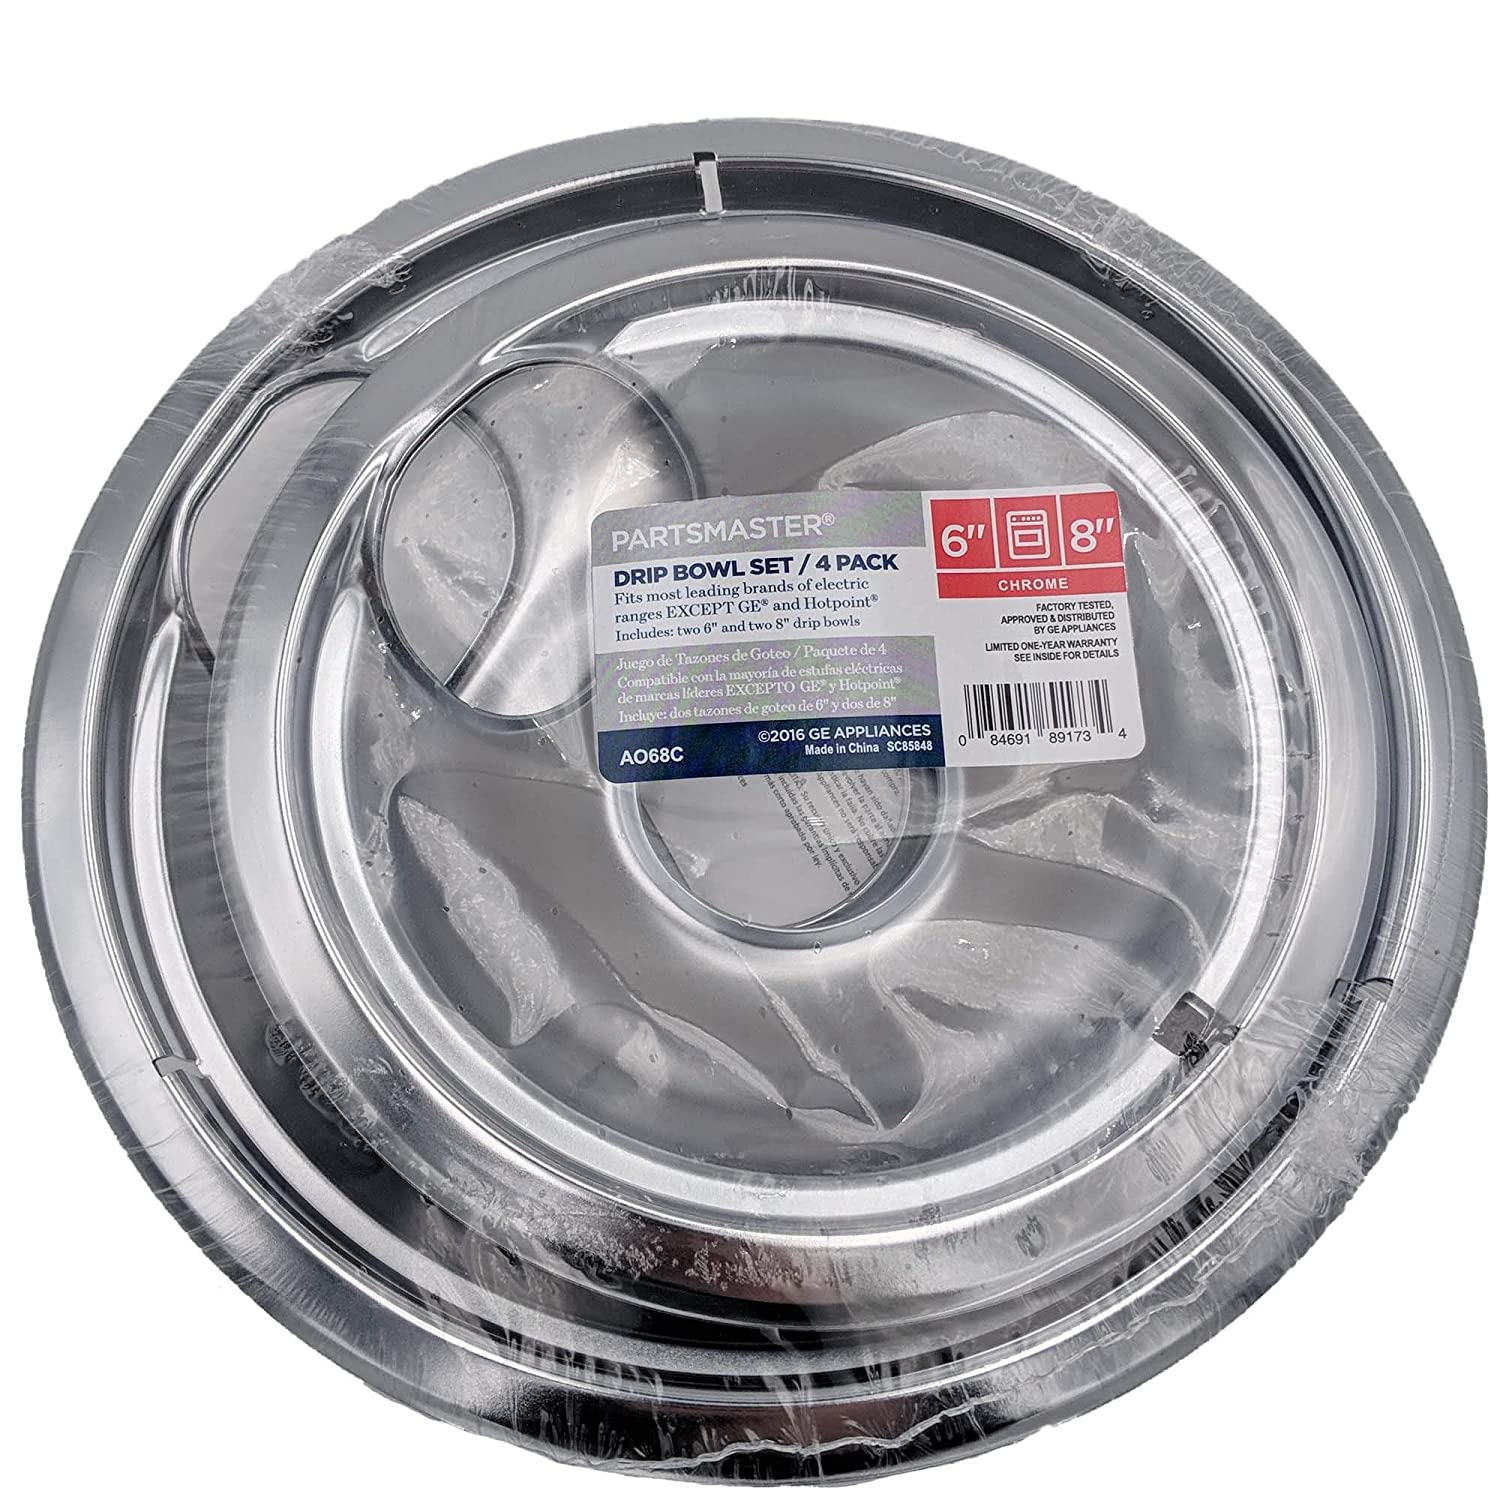 Amazon.com: A068C GE Drip Bowl Set for Electric Ranges (4-Pack) Fits Most Leading Brands Except GE and Hotpoint: Home Improvement